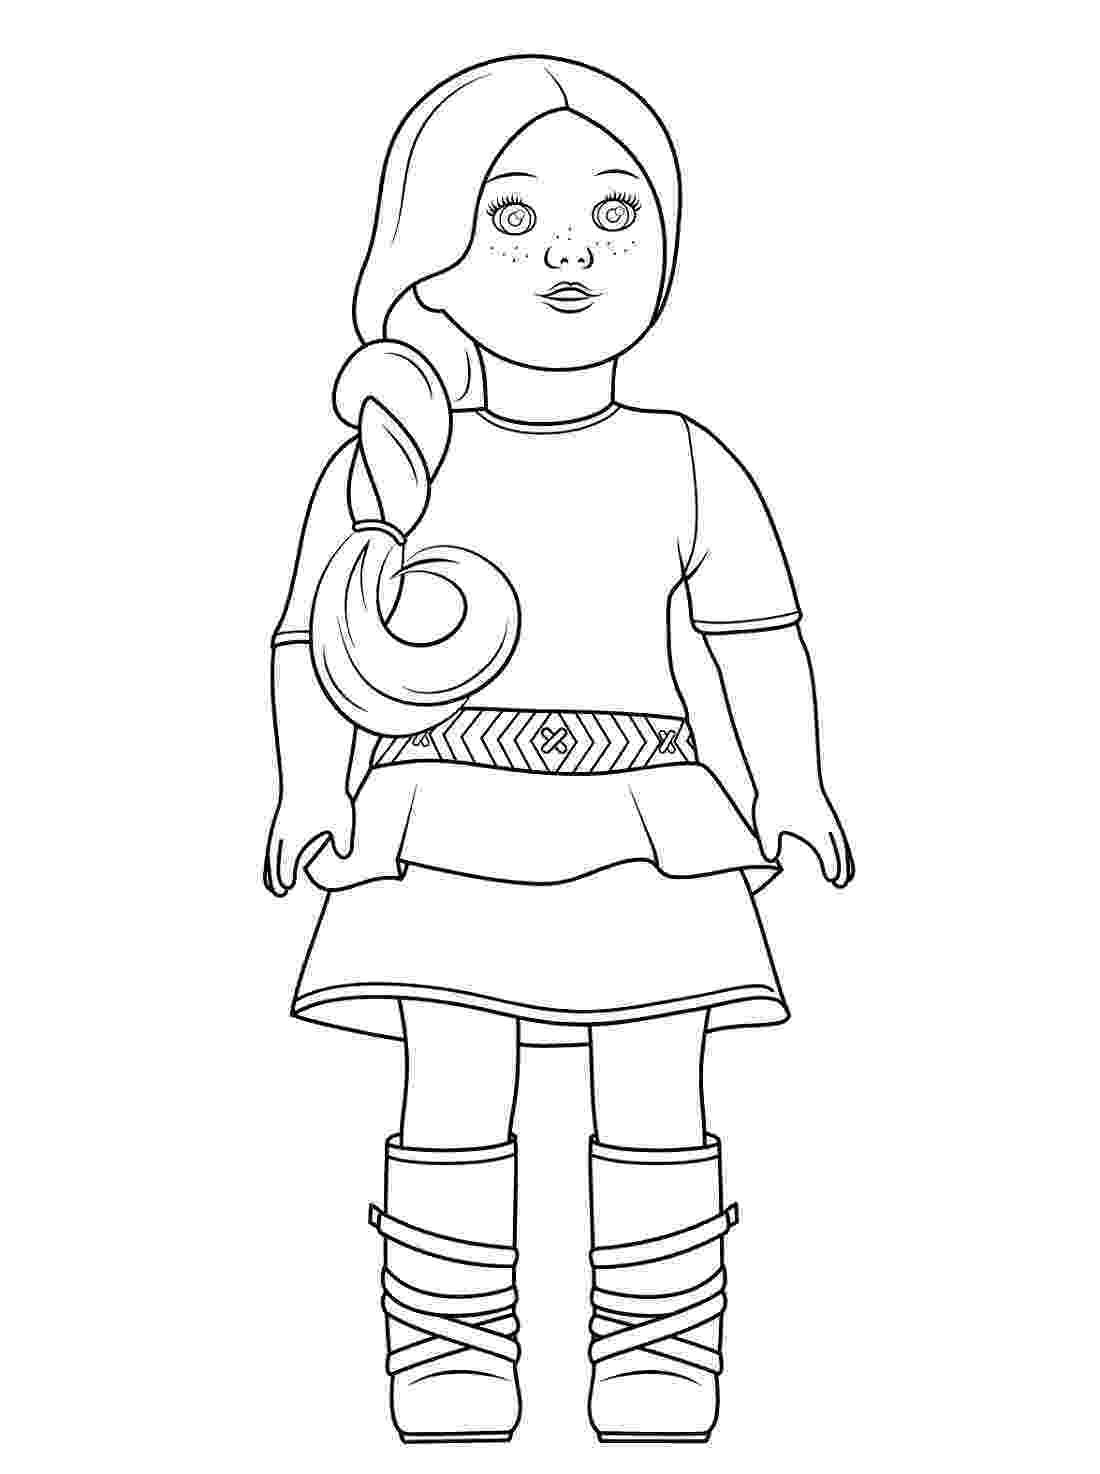 american girl doll free coloring pages american girl coloring pages best coloring pages for kids coloring doll pages free american girl